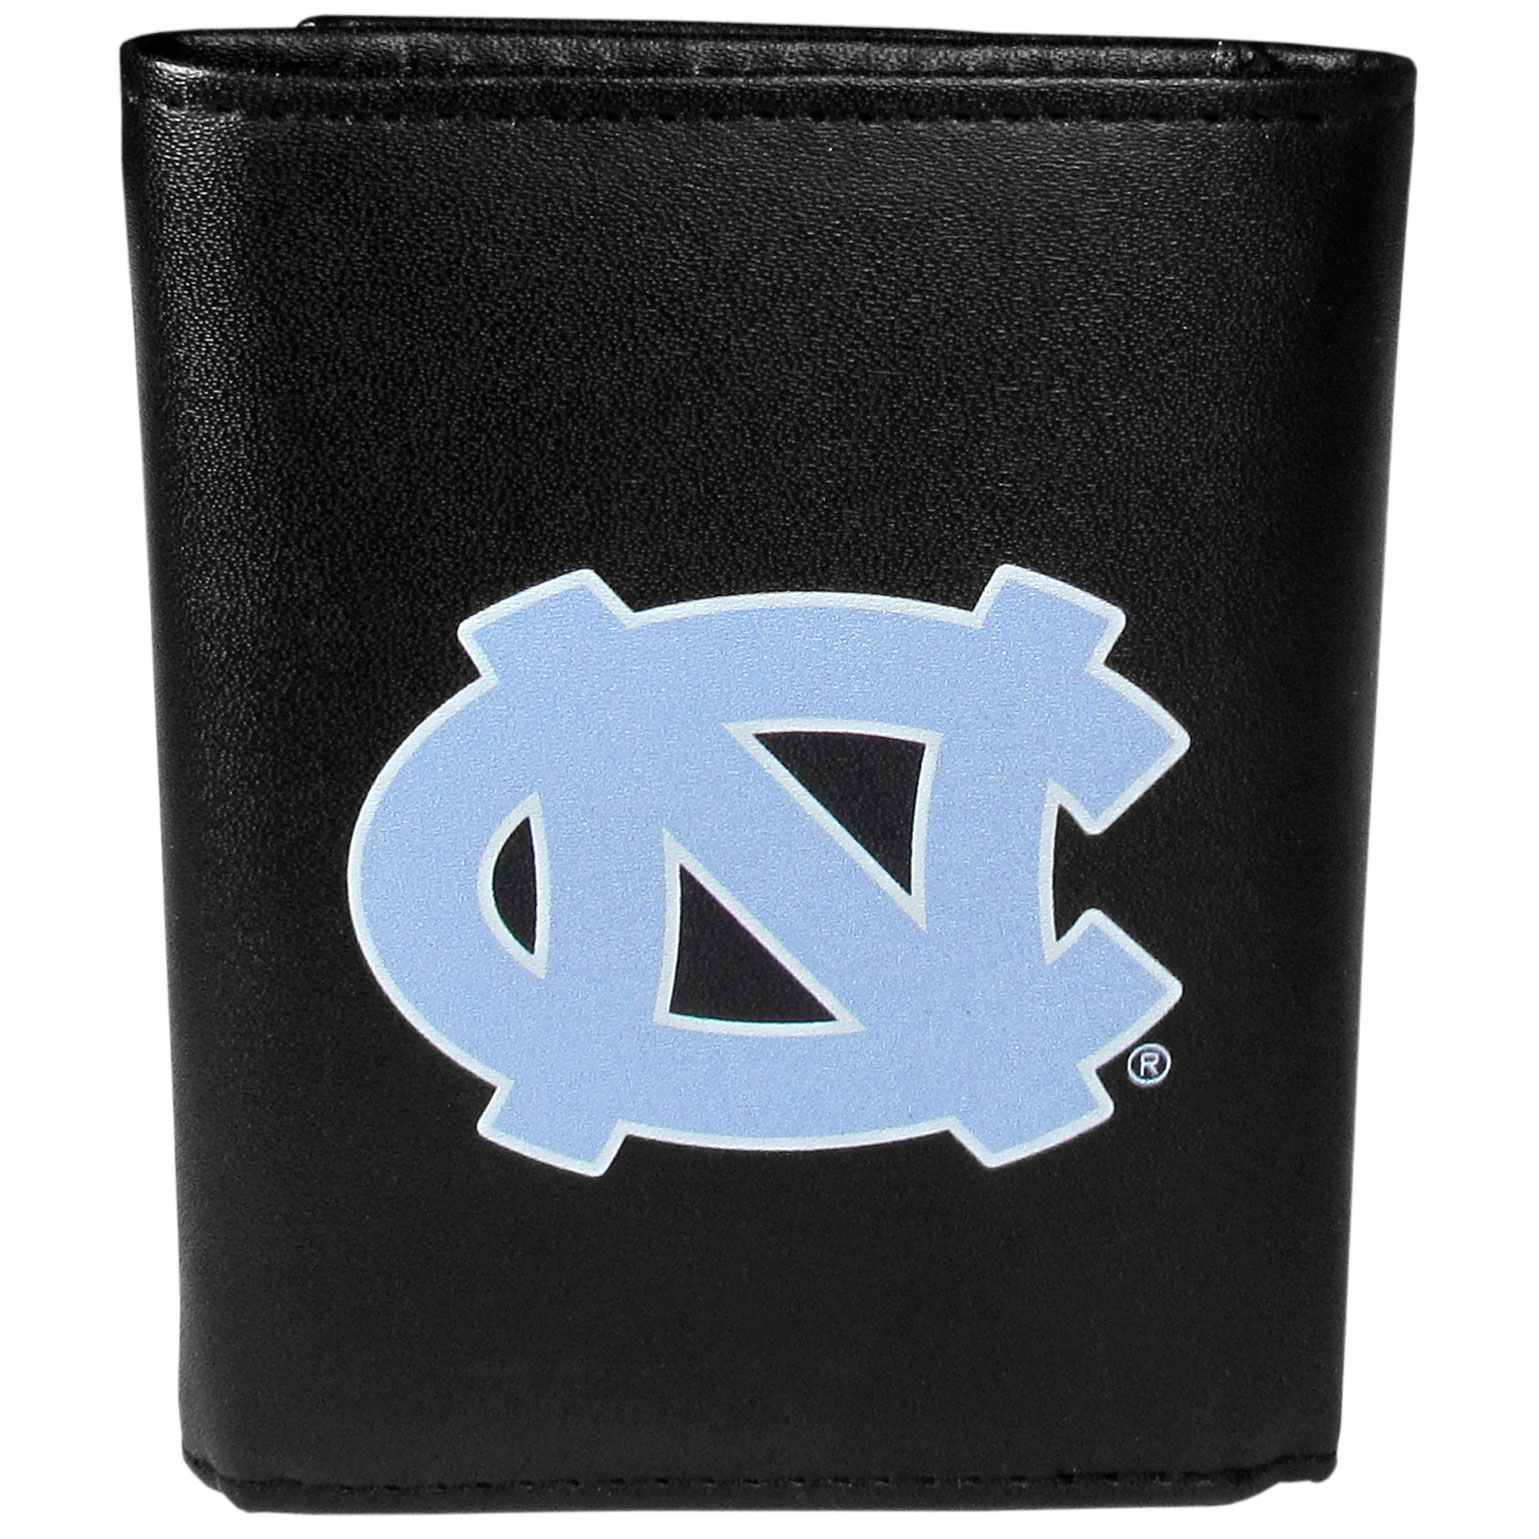 N. Carolina Tar Heels Leather Tri-fold Wallet, Large Logo - Our classic fine leather tri-fold wallet is meticulously crafted with genuine leather that will age beautifully so you will have a quality wallet for years to come. This is fan apparel at its finest. The wallet is packed with organizational  features; lots of credit card slots, large billfold pocket, and a window ID slot. The front of the wallet features an extra large N. Carolina Tar Heels printed logo.